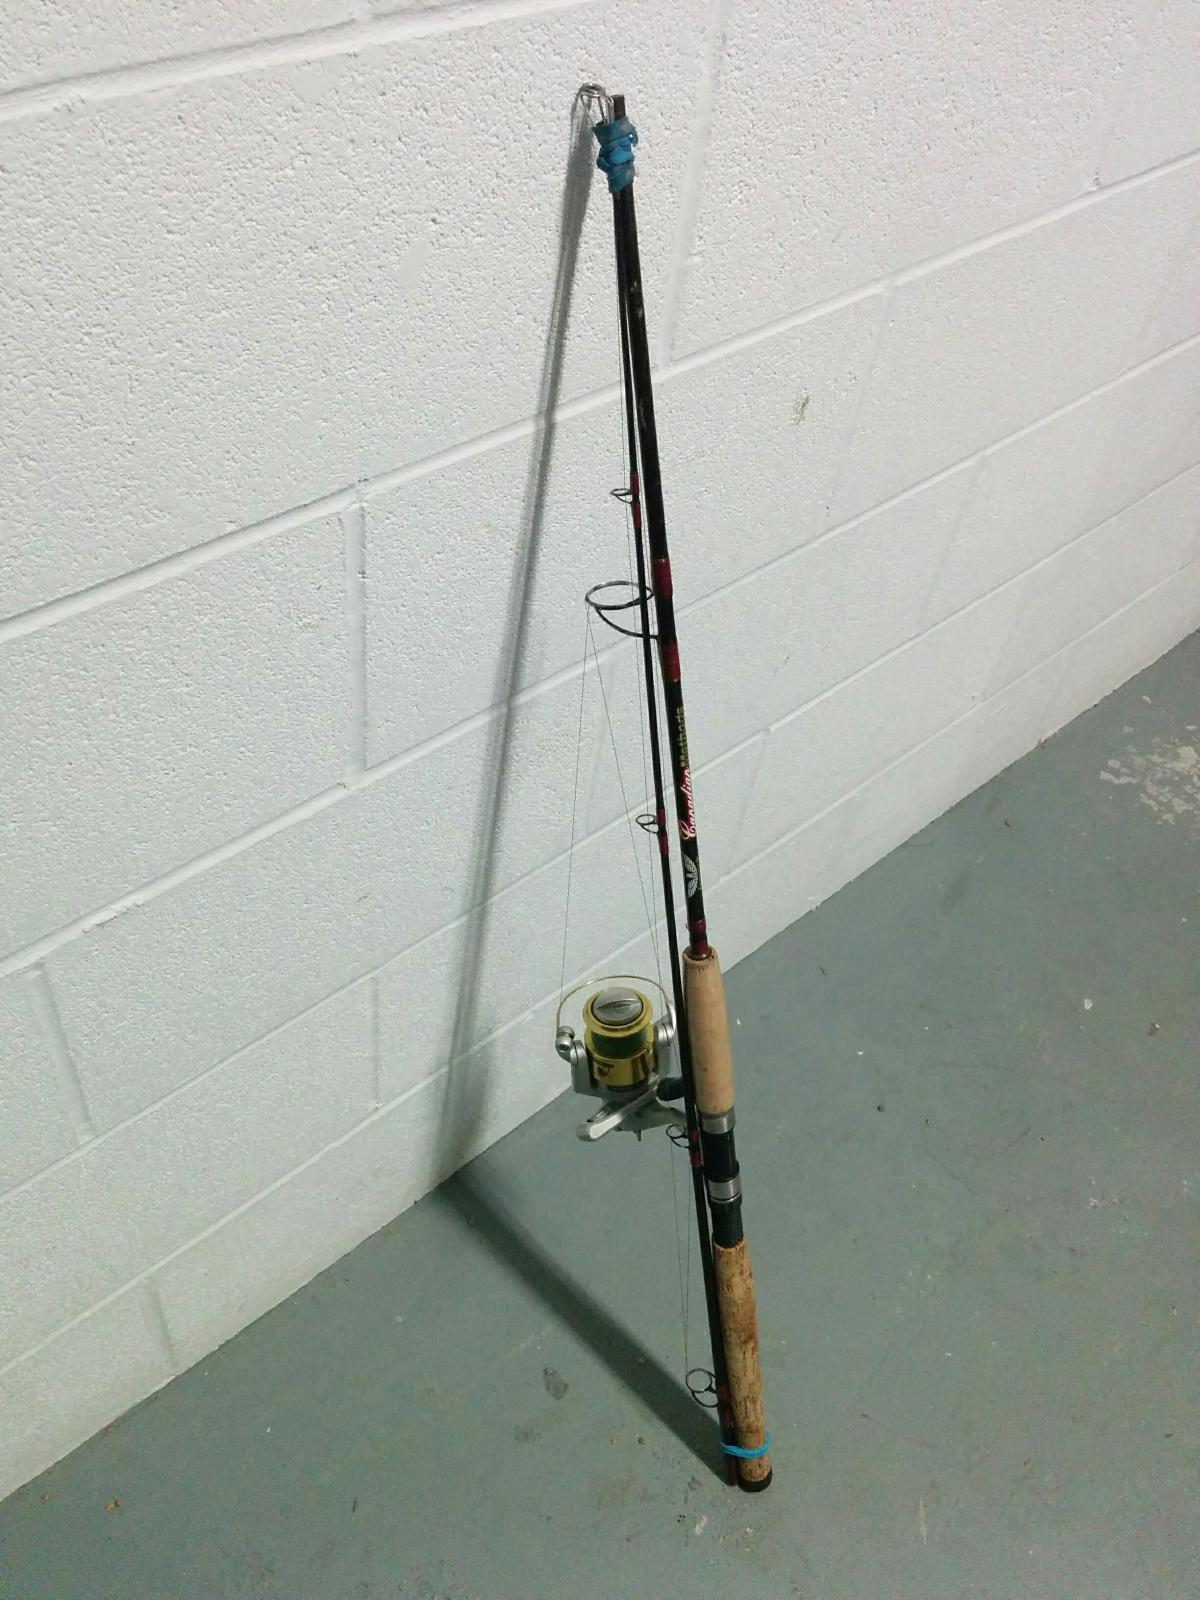 Fishing equipment for sale buy sell trade ontario for Fishing equipment for sale